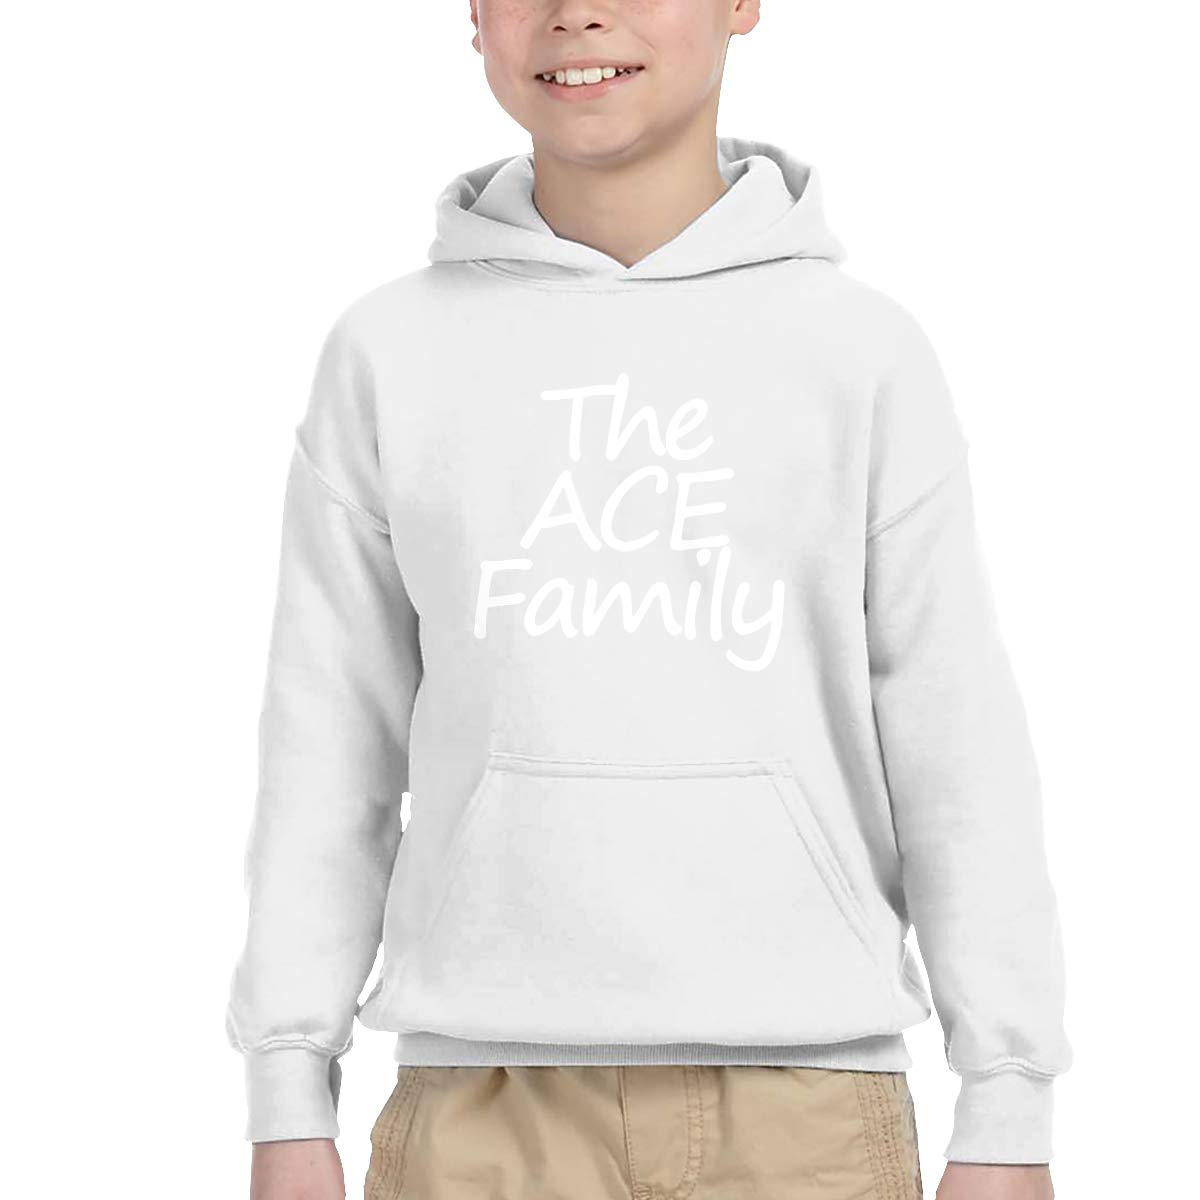 The ACE Family Youth Hip Hop Pullover Hoodie Sweater with Kangaroo Pocket Hooded Sweatshirts